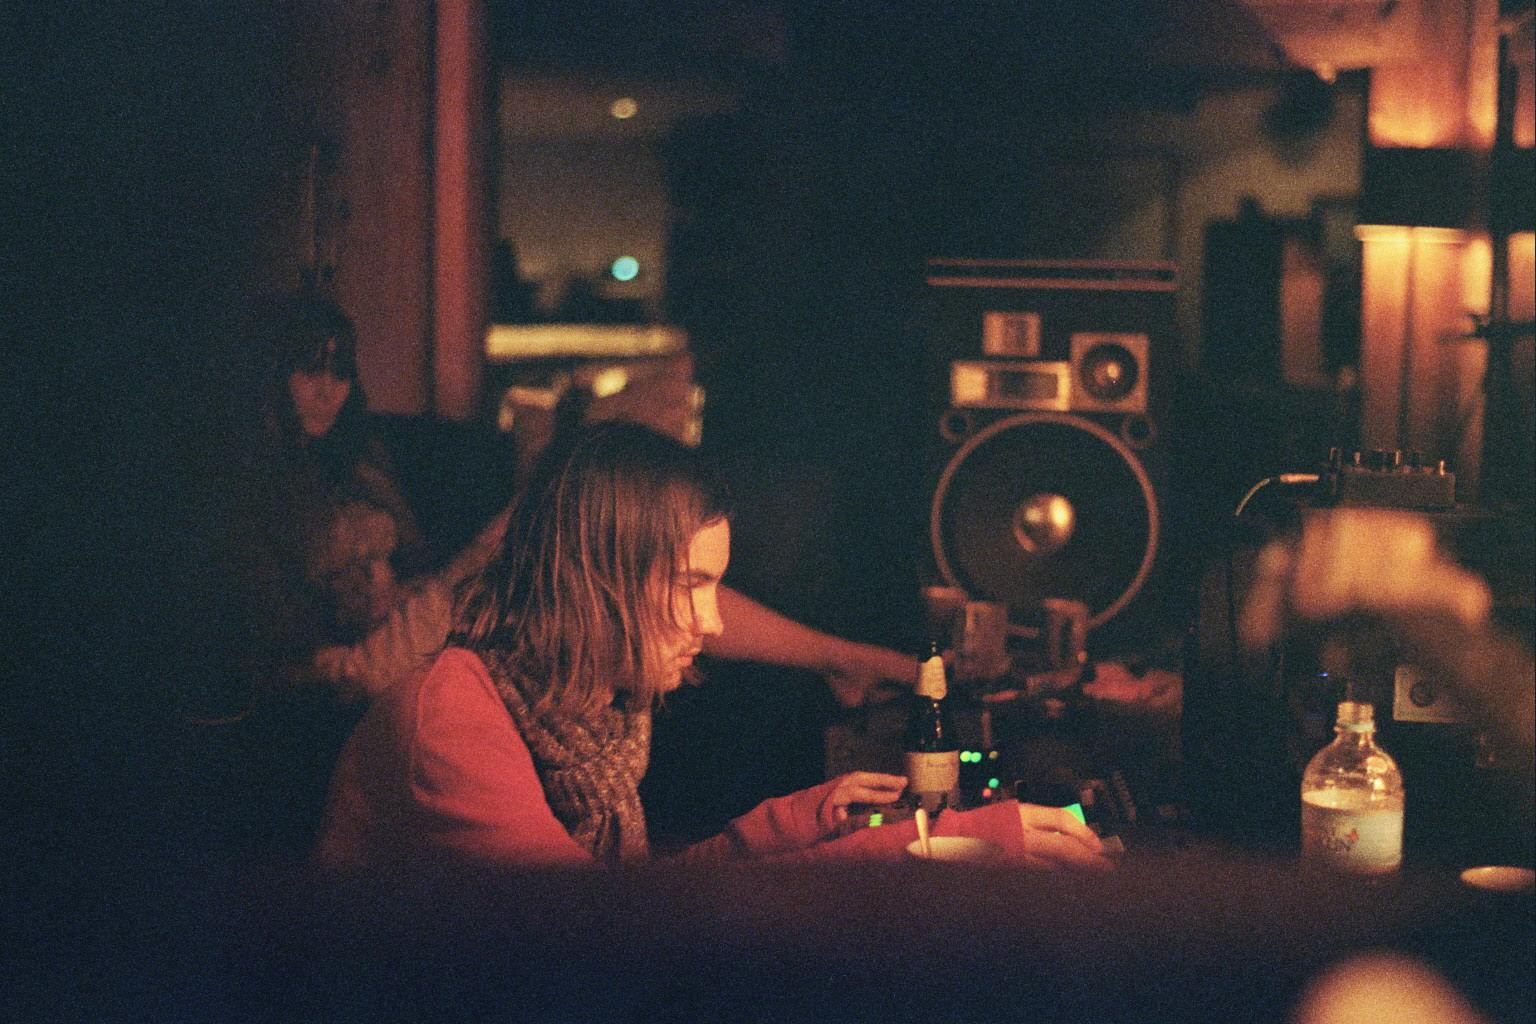 Parker recording in 'Innerspeaker' in 2009.